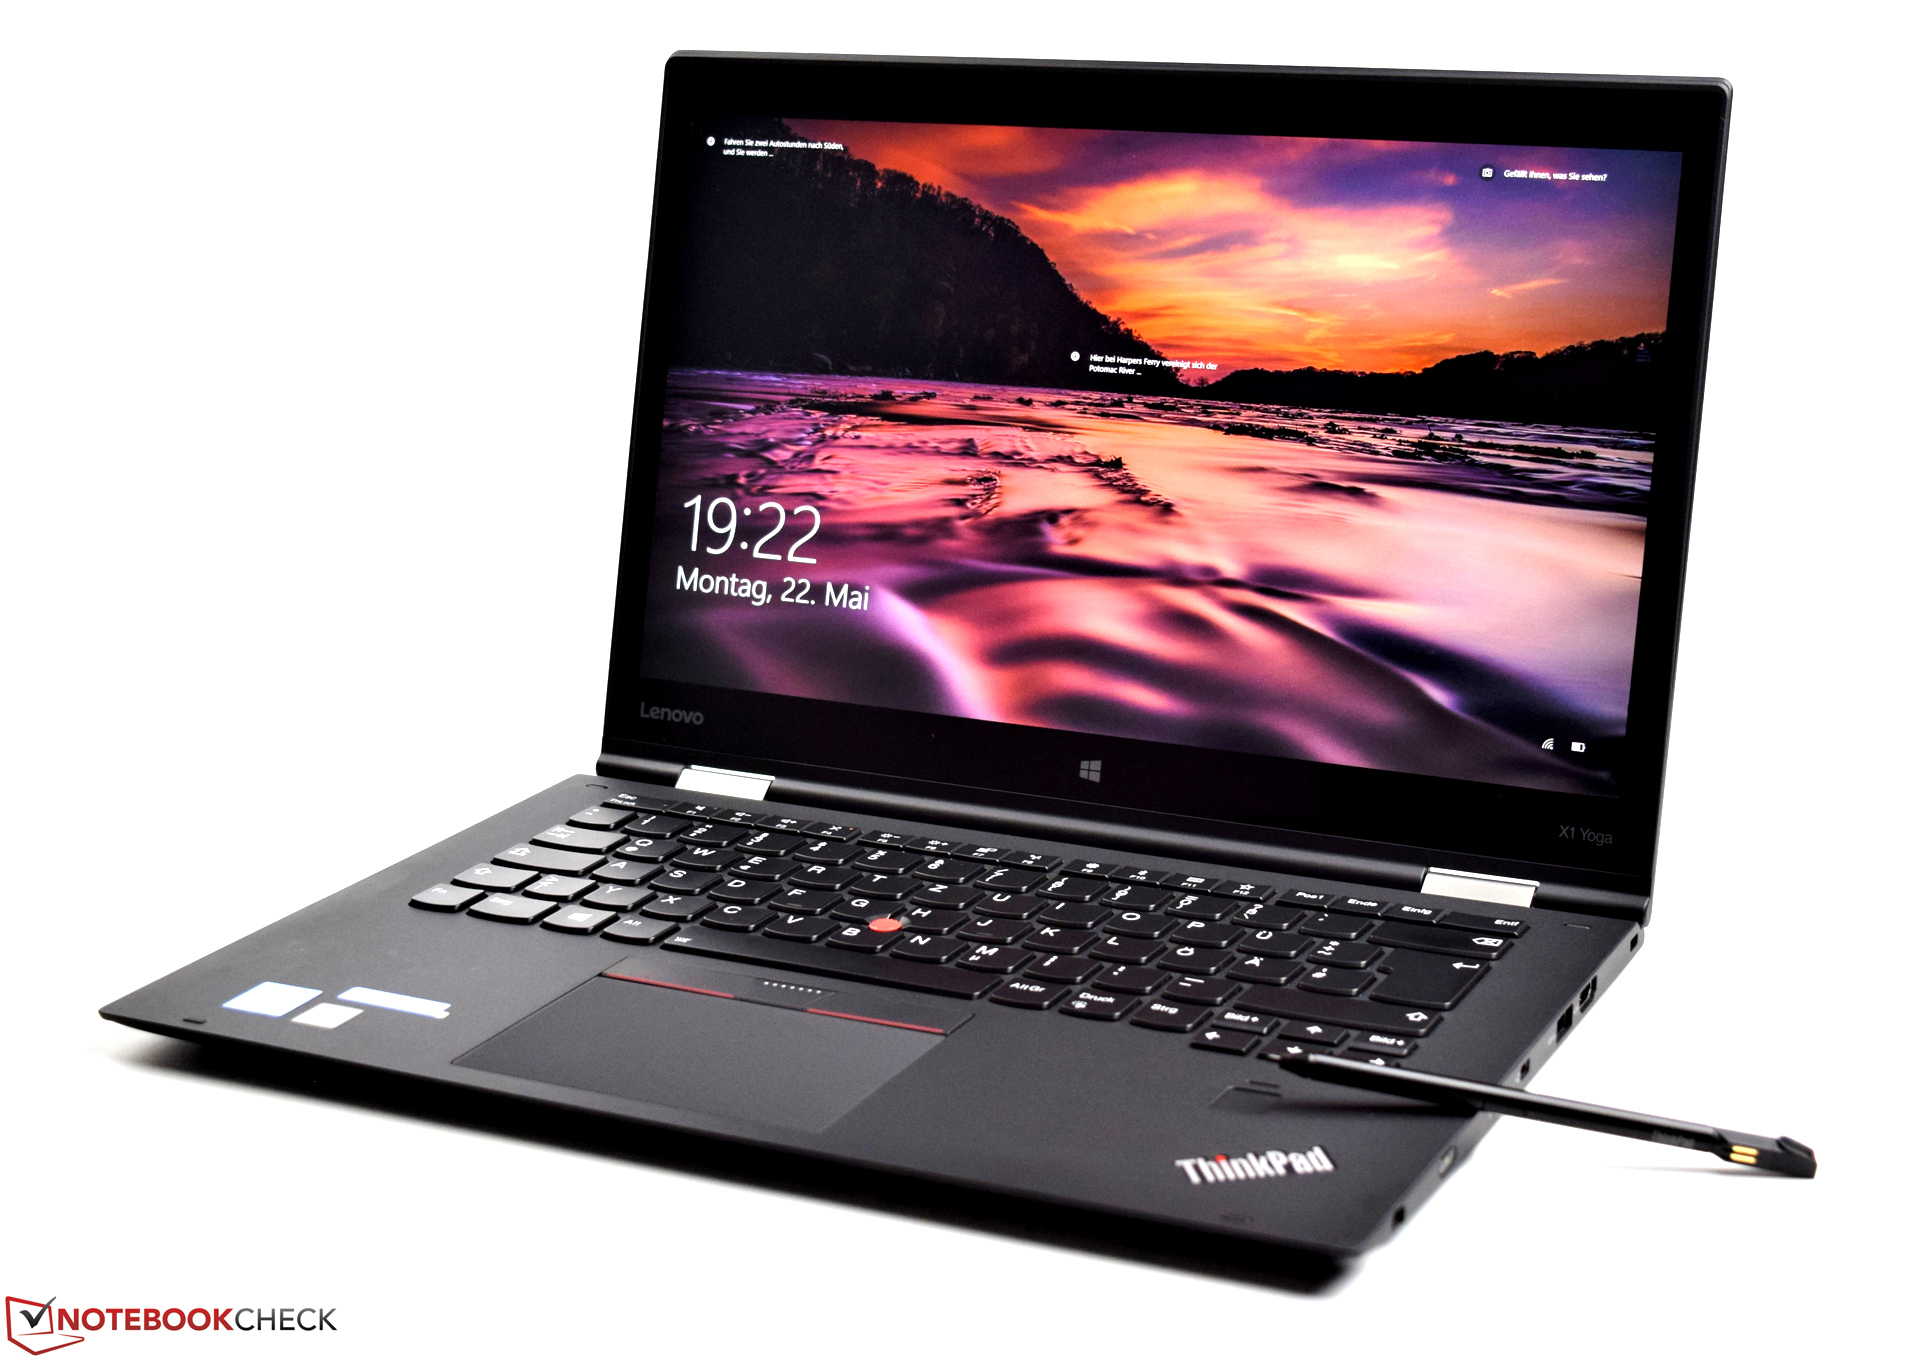 Lenovo ThinkPad S3 Conexant Audio Mac